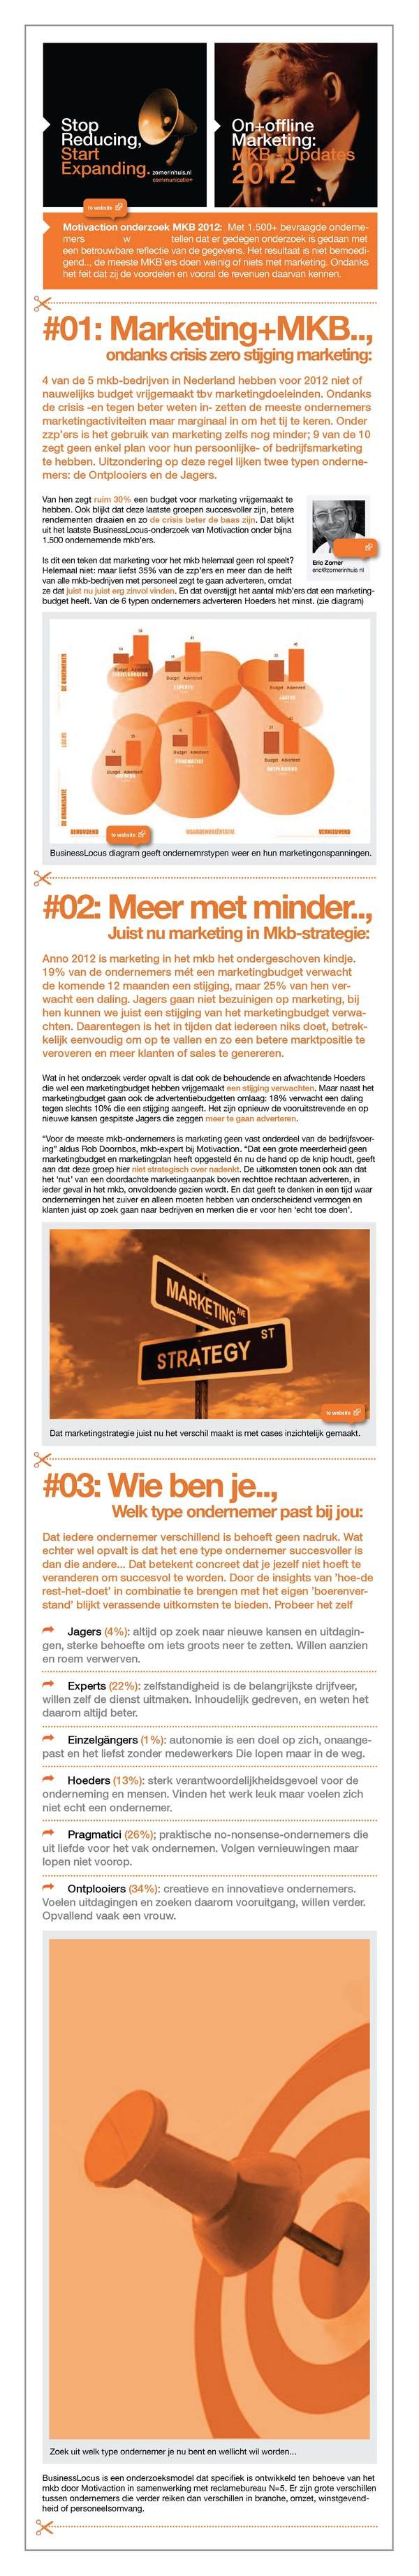 Mkb Marketing Update 2012: 3 New Learnings by Eric Zomer, via Behance: Altijd al willen weten wat voor type ondernemr je bent? Check out de MKB Update